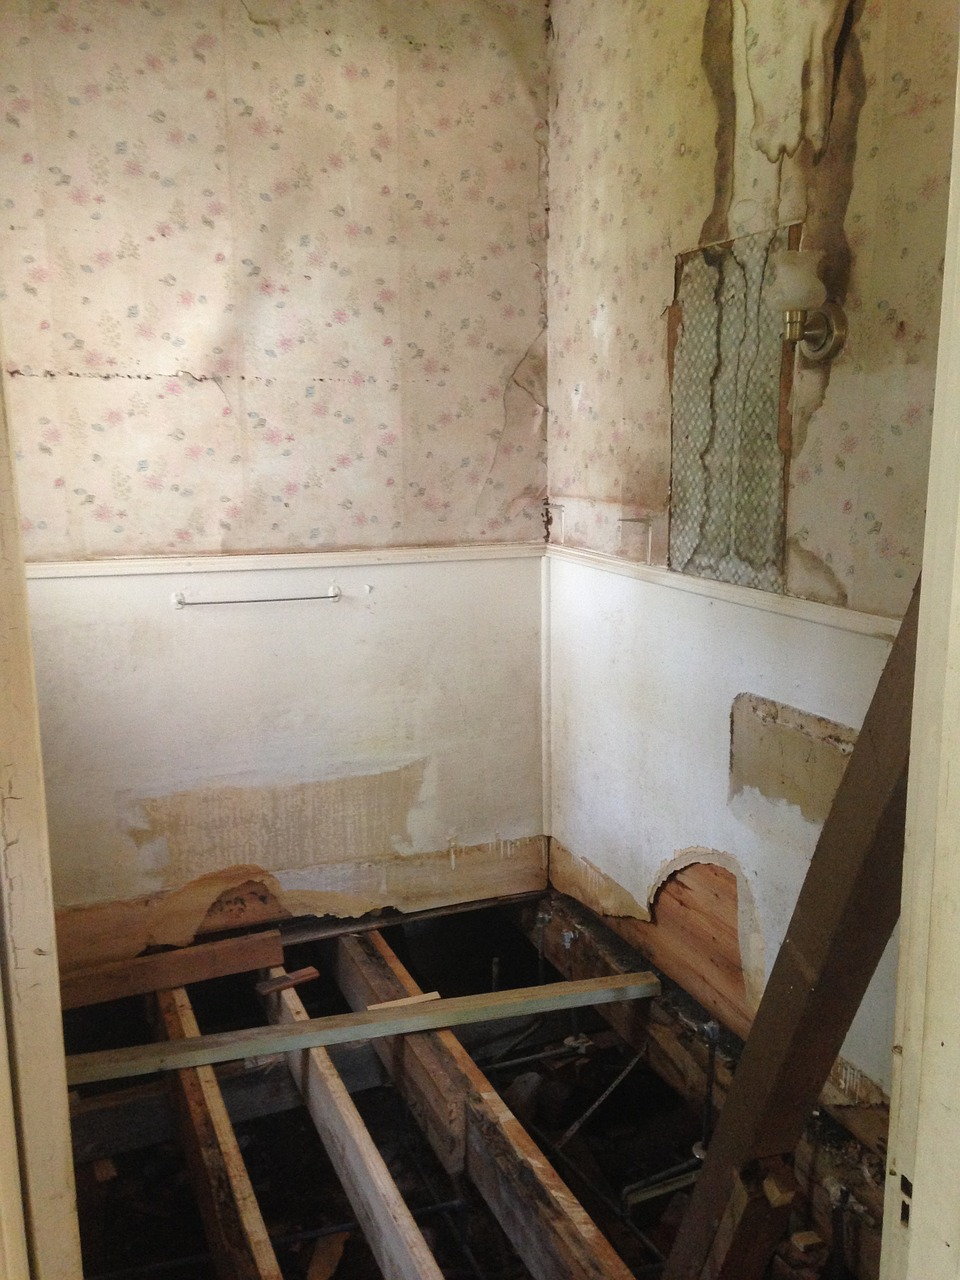 construction, demolition, bathroom remodel